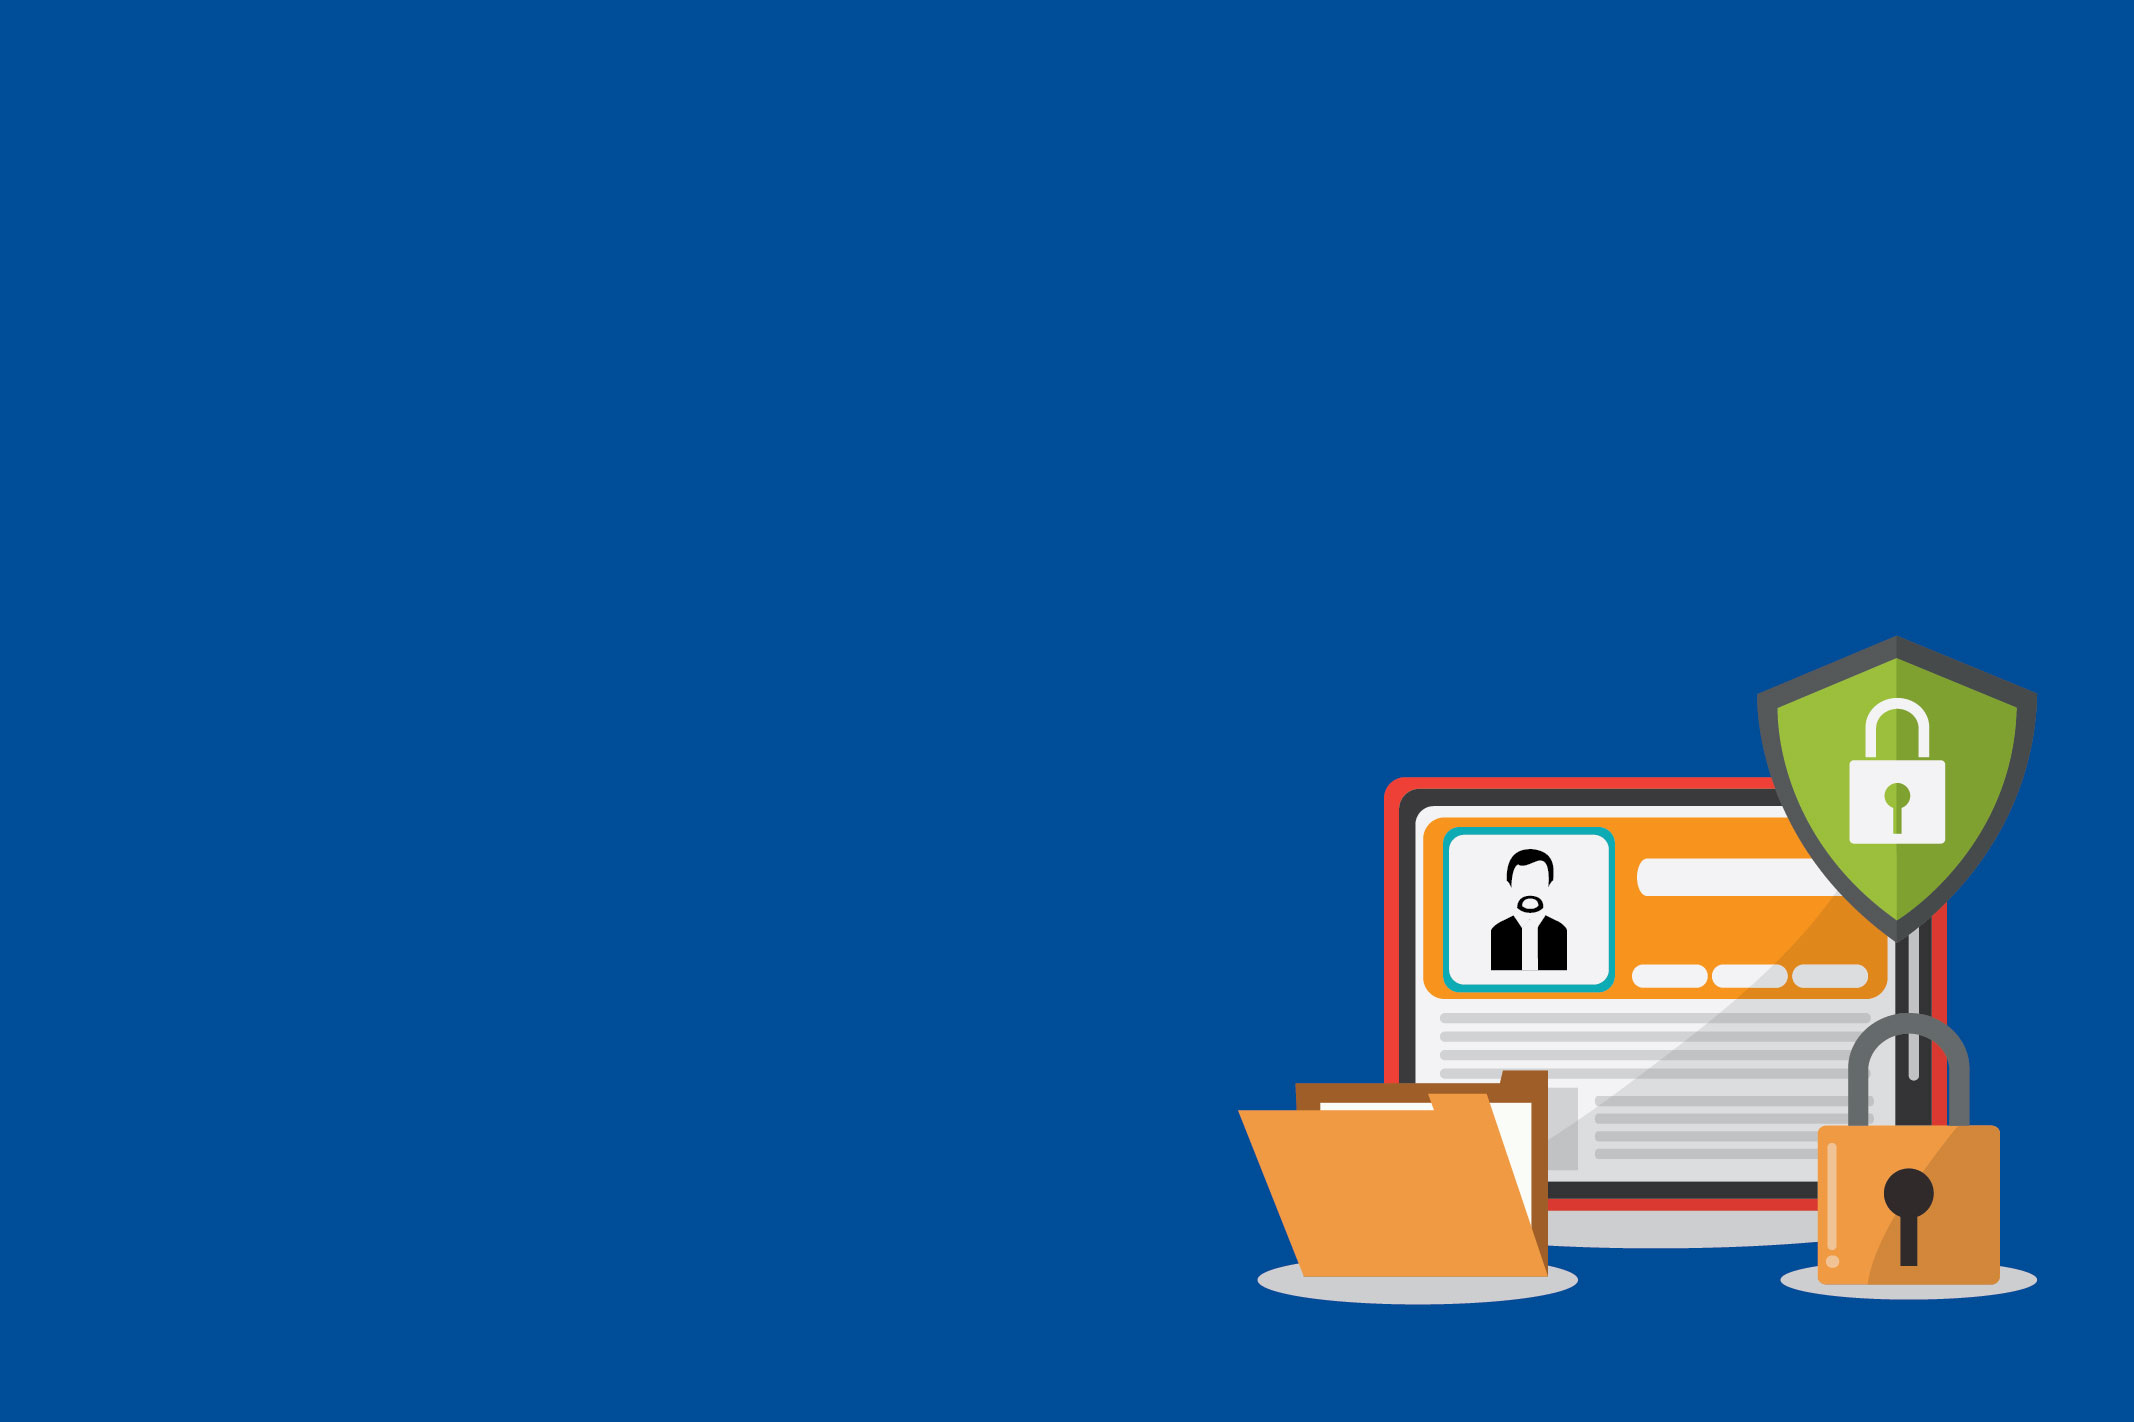 Indian data protection regime – Close to reality? - Personal Data Protection Bill, 2018